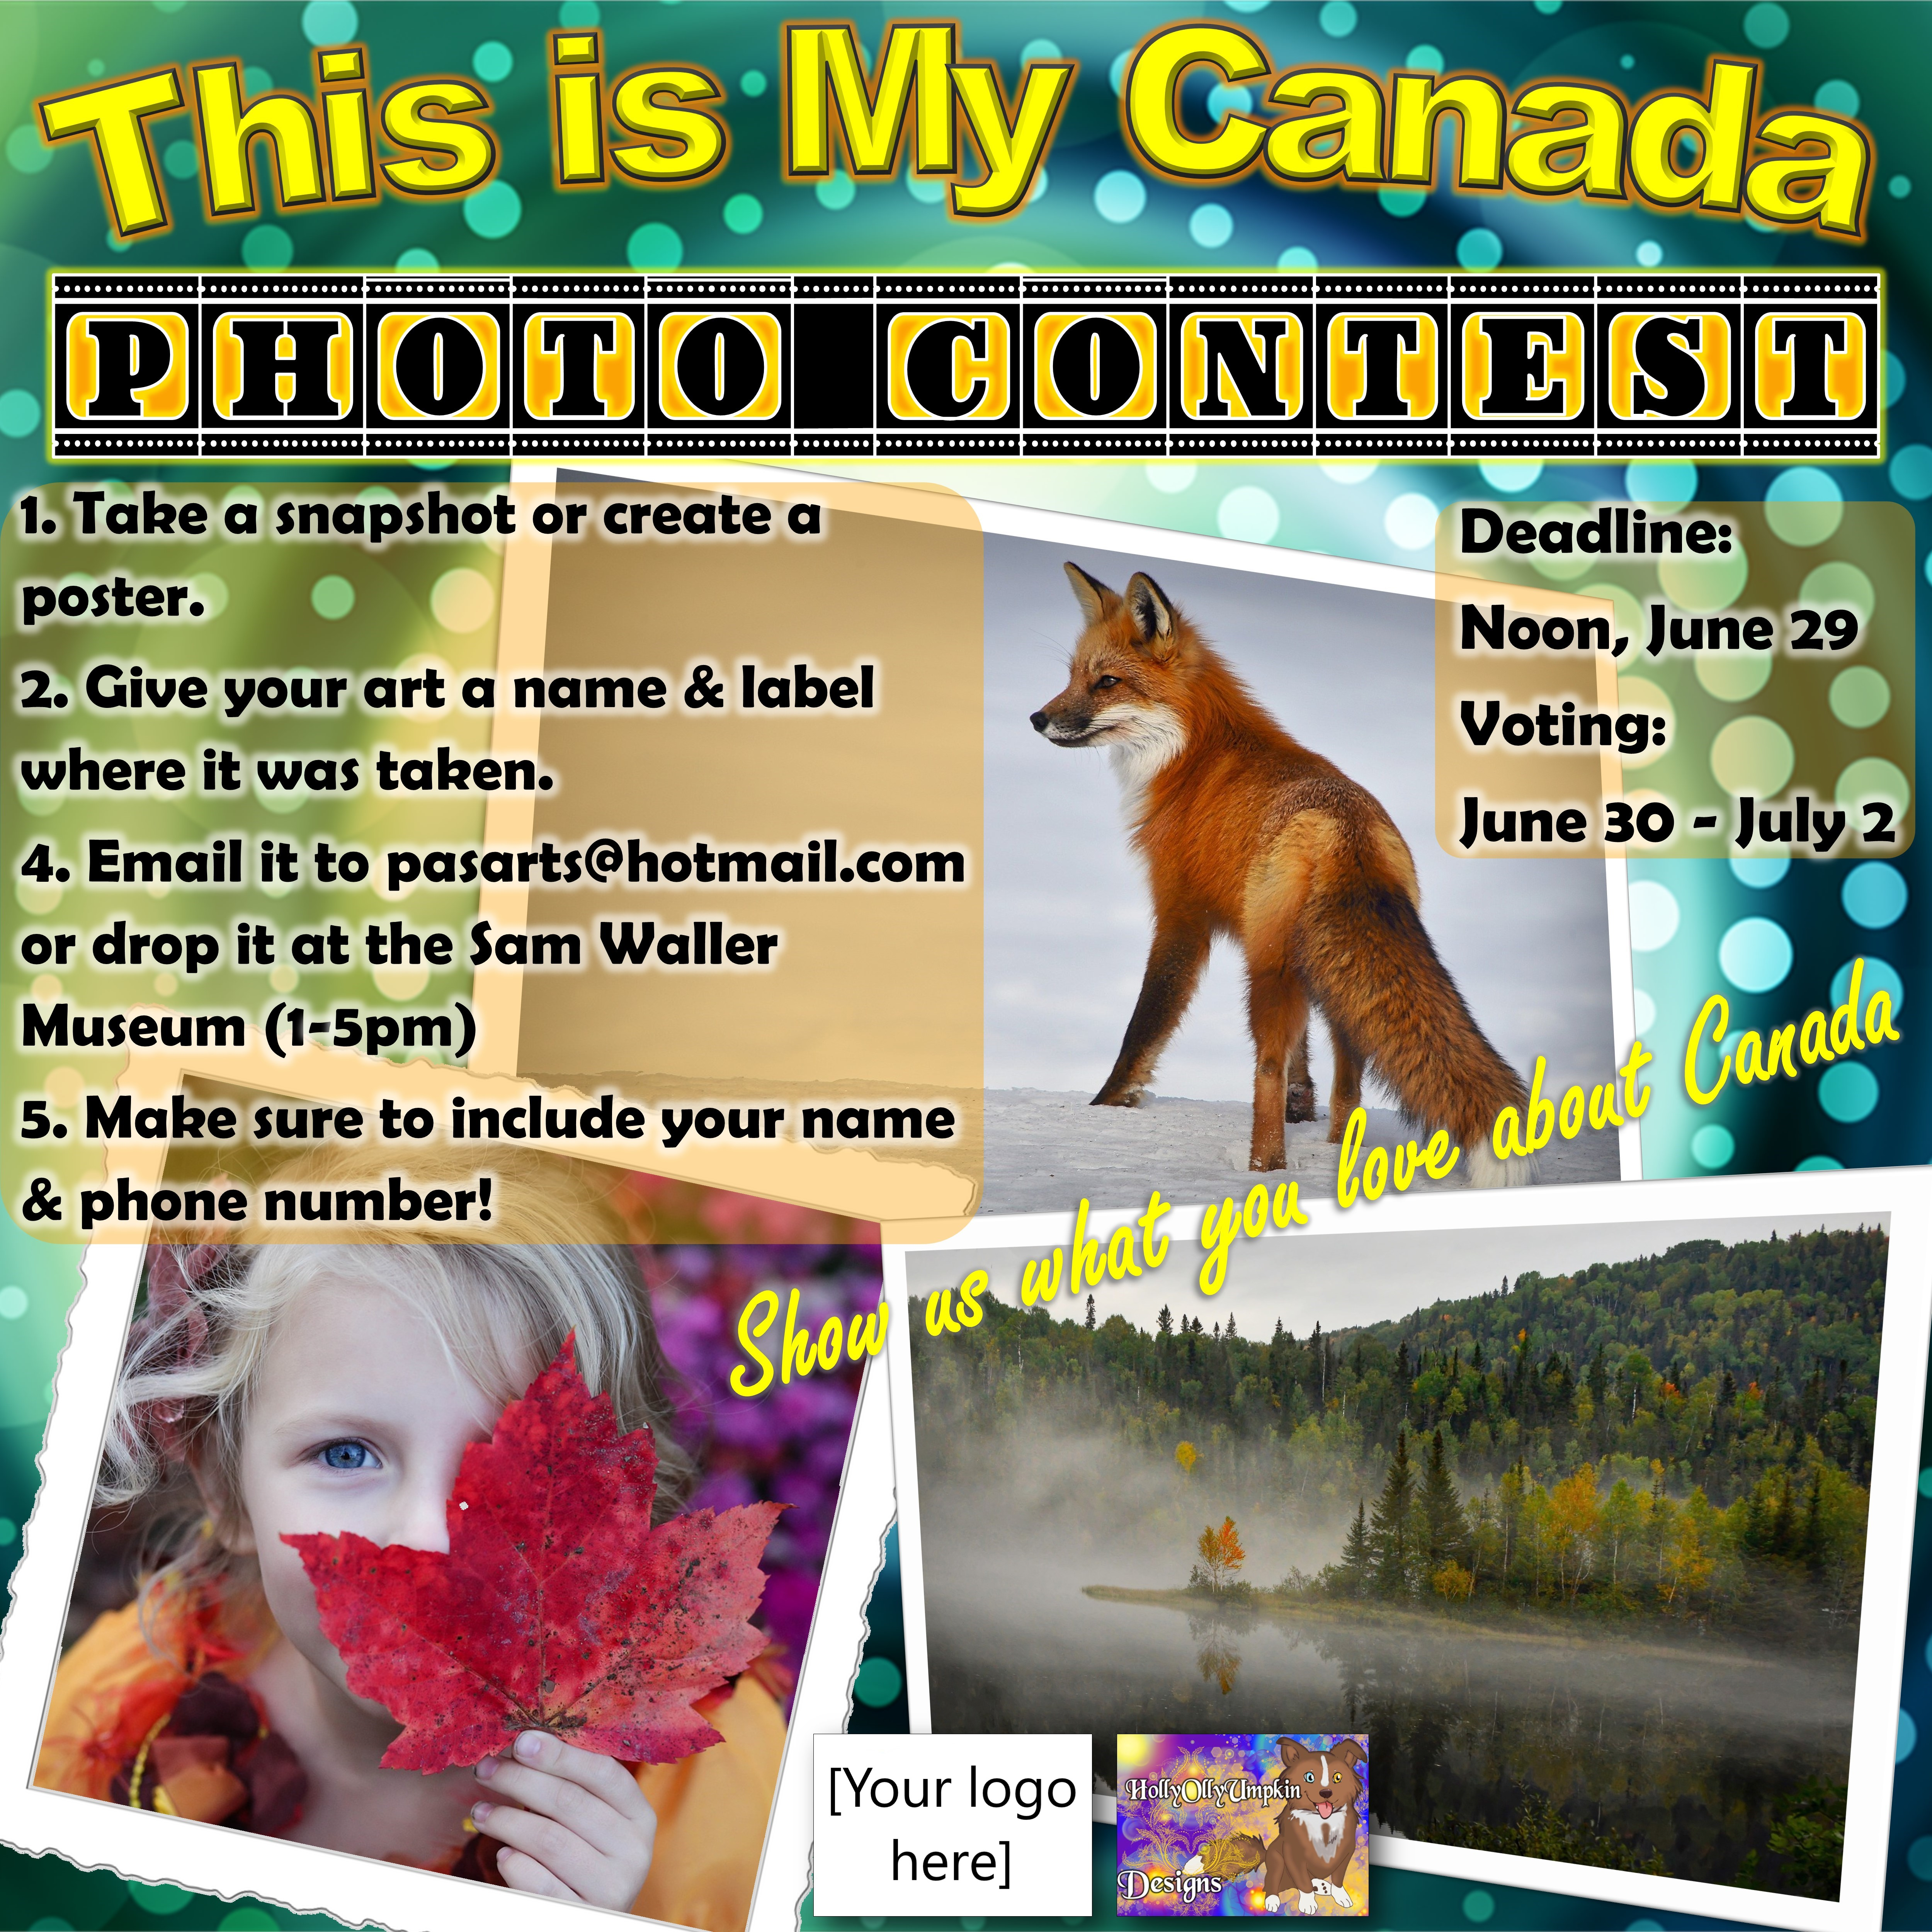 Facebook Post - This is My Canada Photo Contest